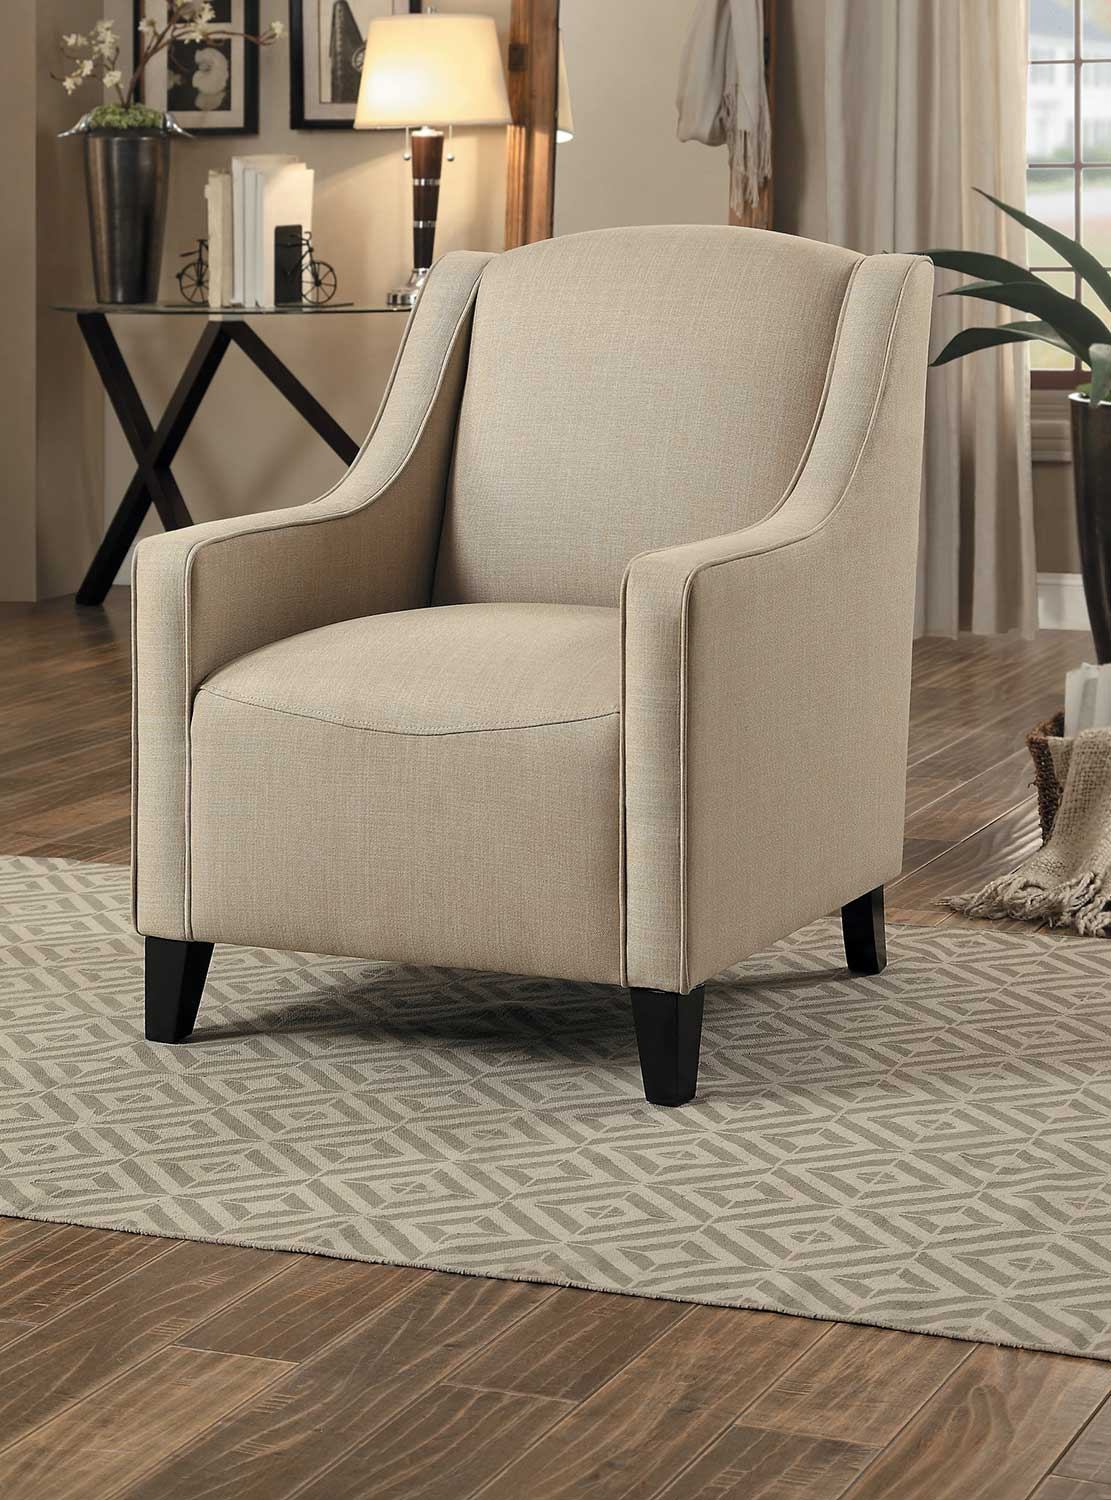 Homelegance Semplice Accent Chair - Beige